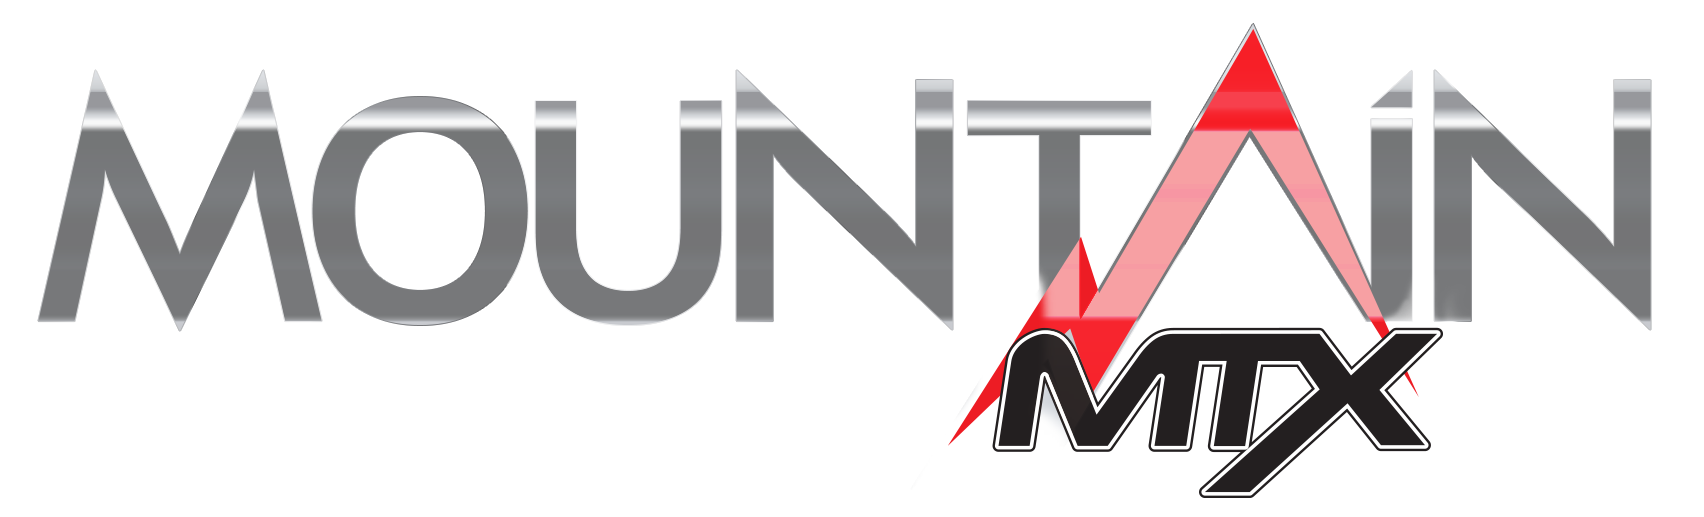 Mountain MTX logo